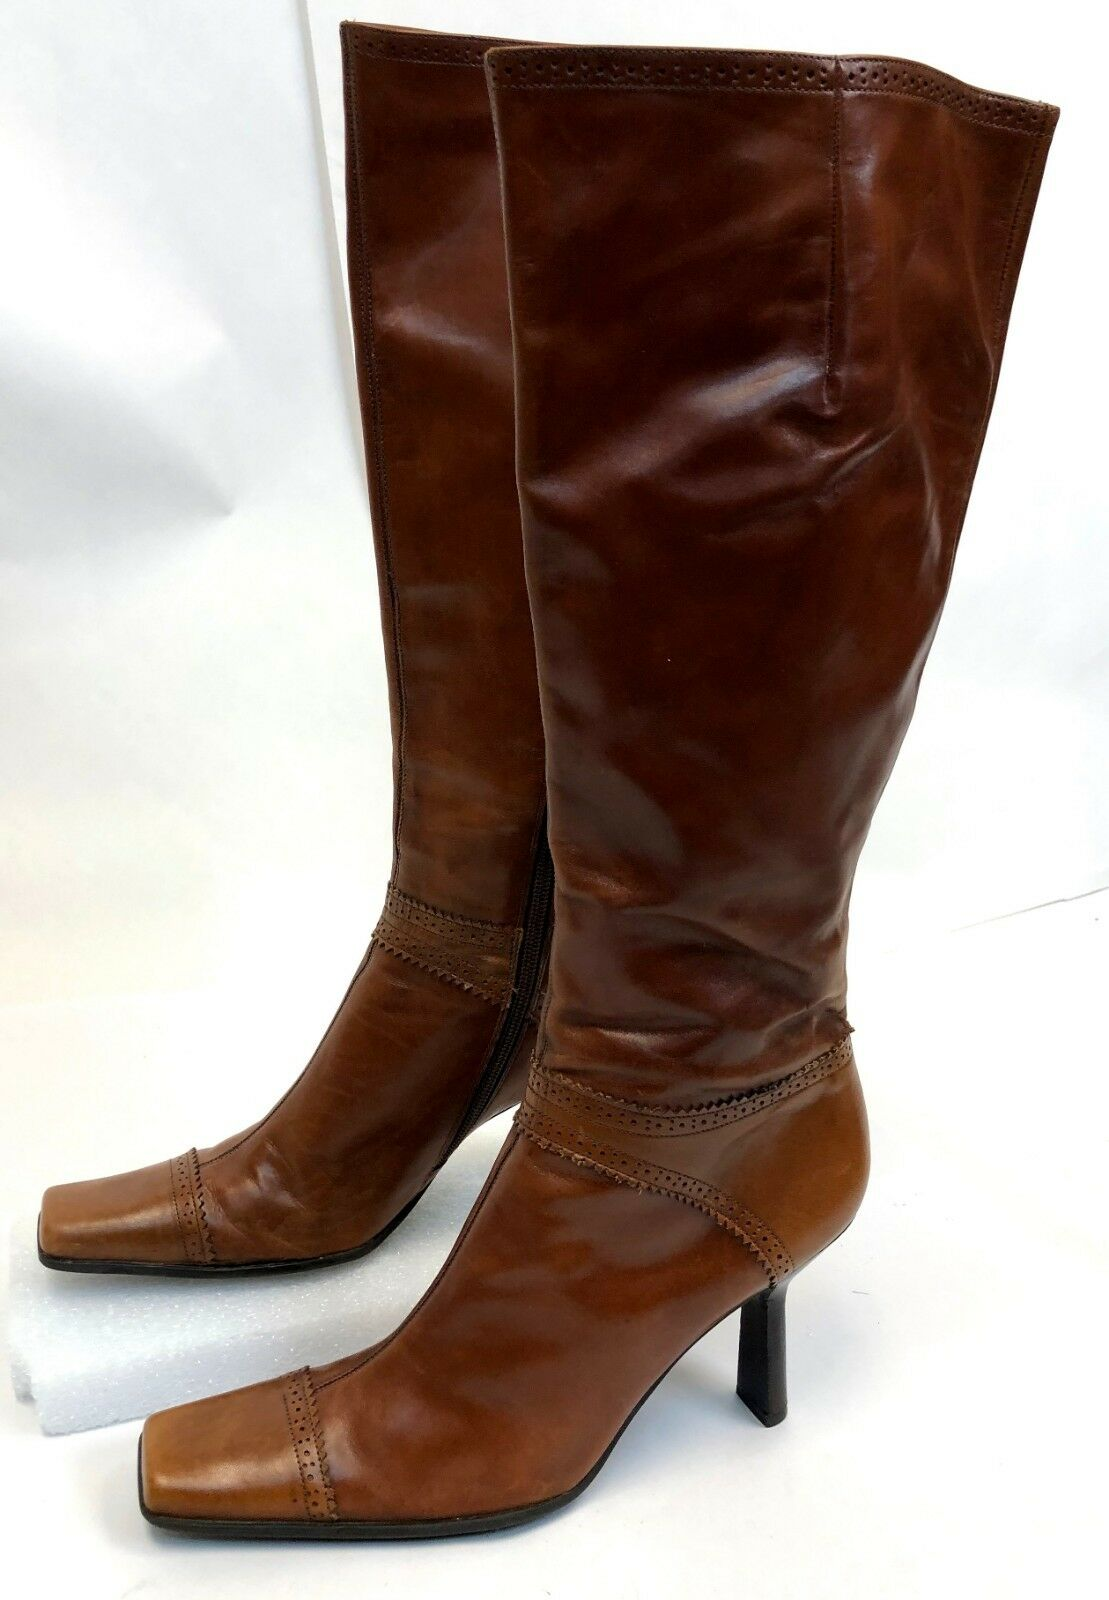 BCBG Girls Tall Calf Brown Leather Square Toe High Heel Riding Boots Size 9.5 B